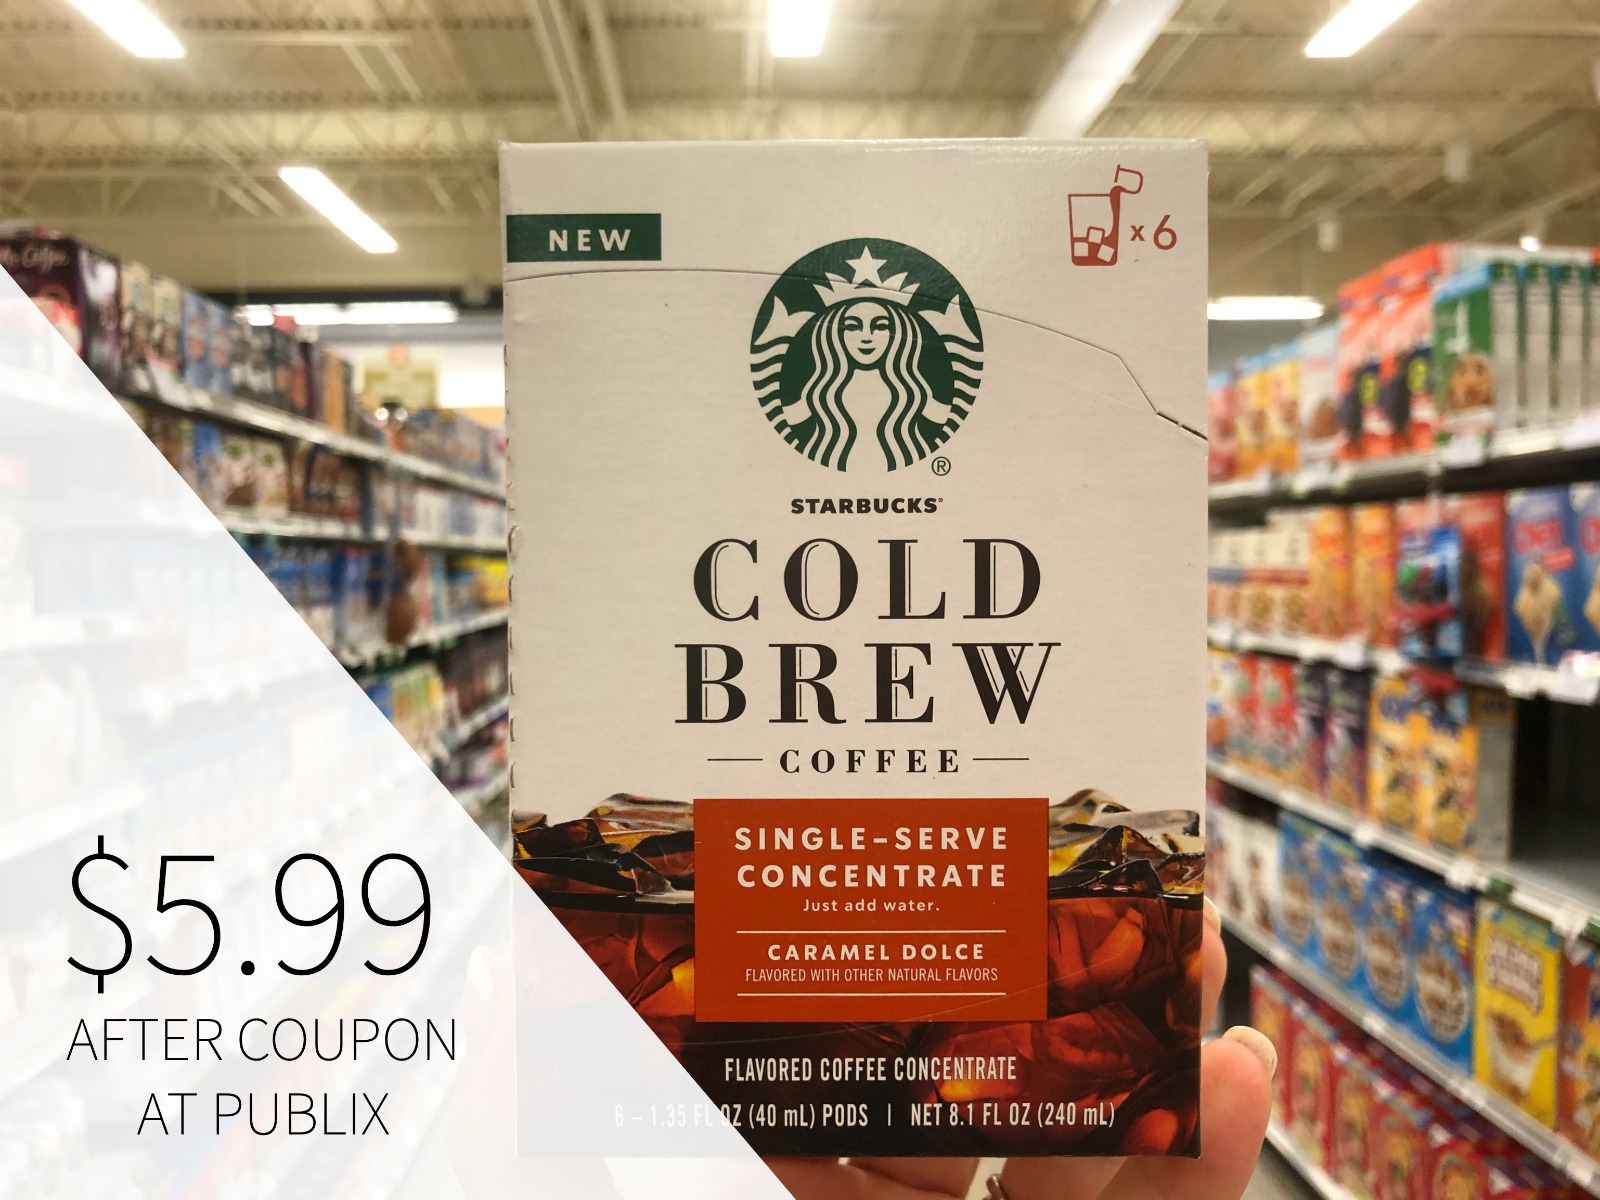 Enjoy The Refreshing Taste Of Starbucks Cold Brew Concentrates & Save Now At Publix on I Heart Publix 2